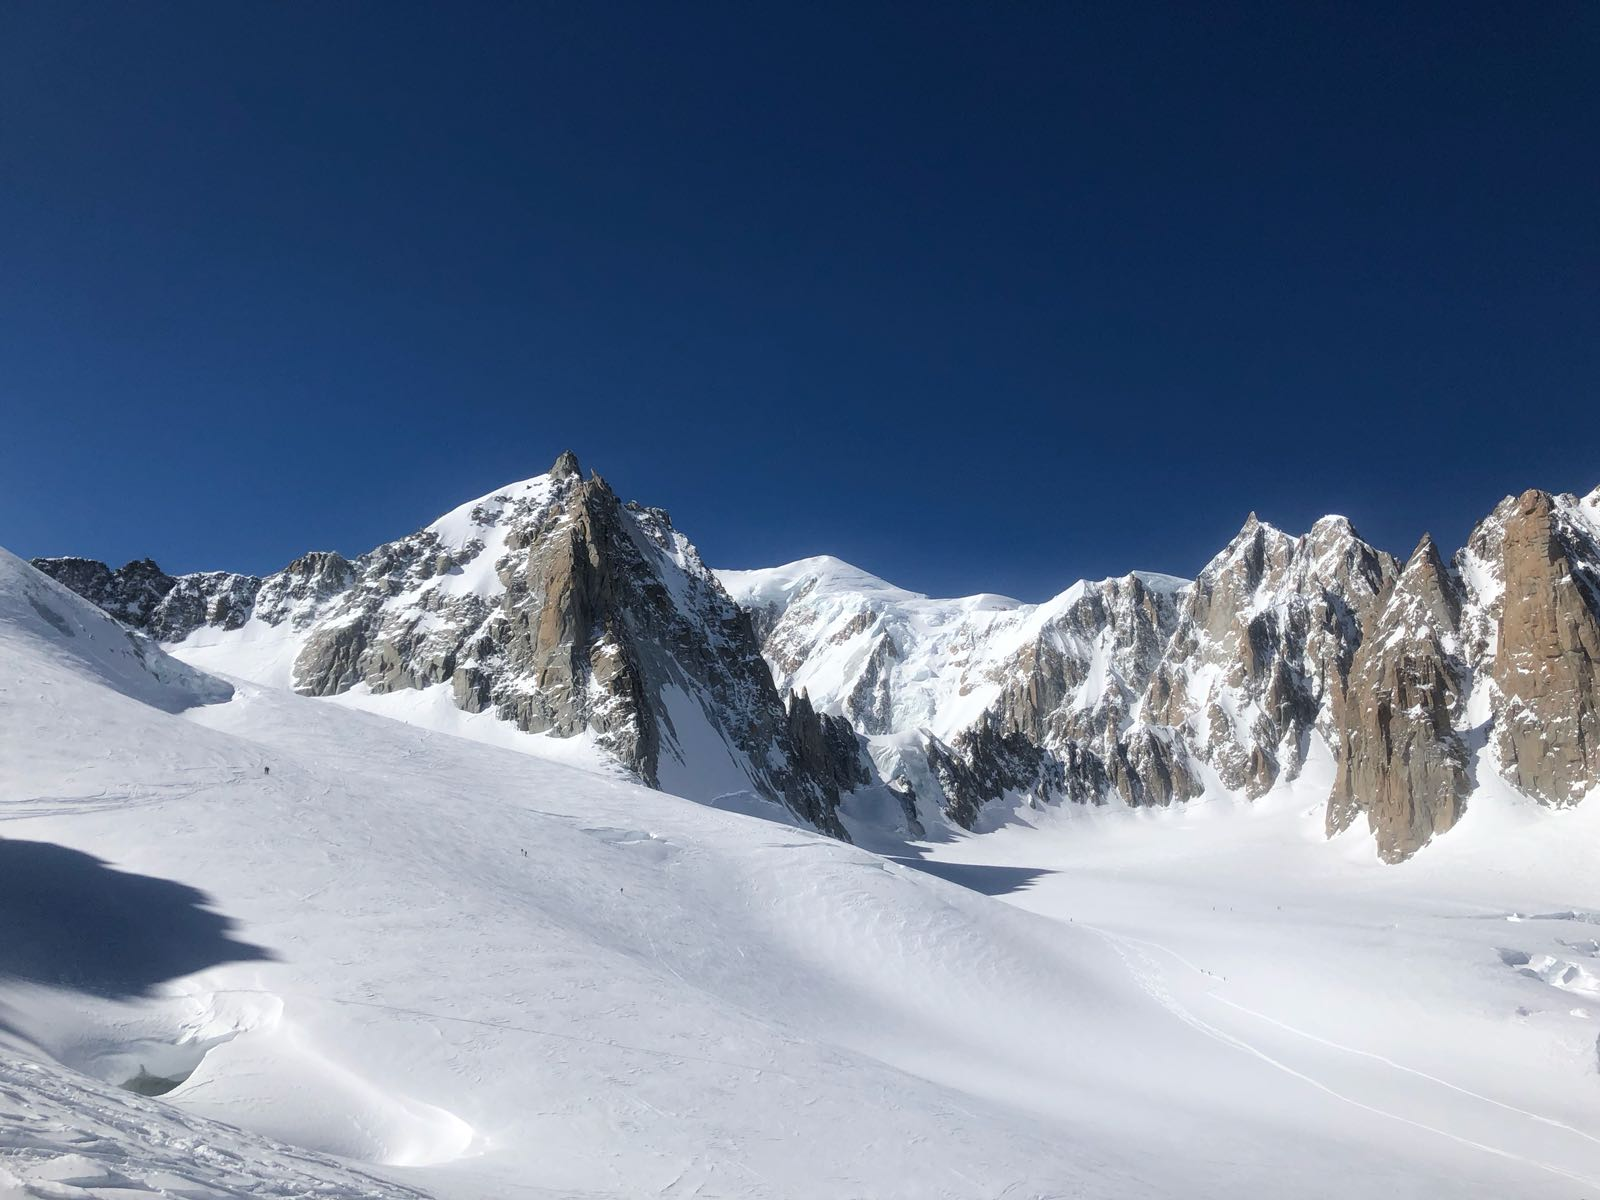 vallee blanche guide alpine proup (29)